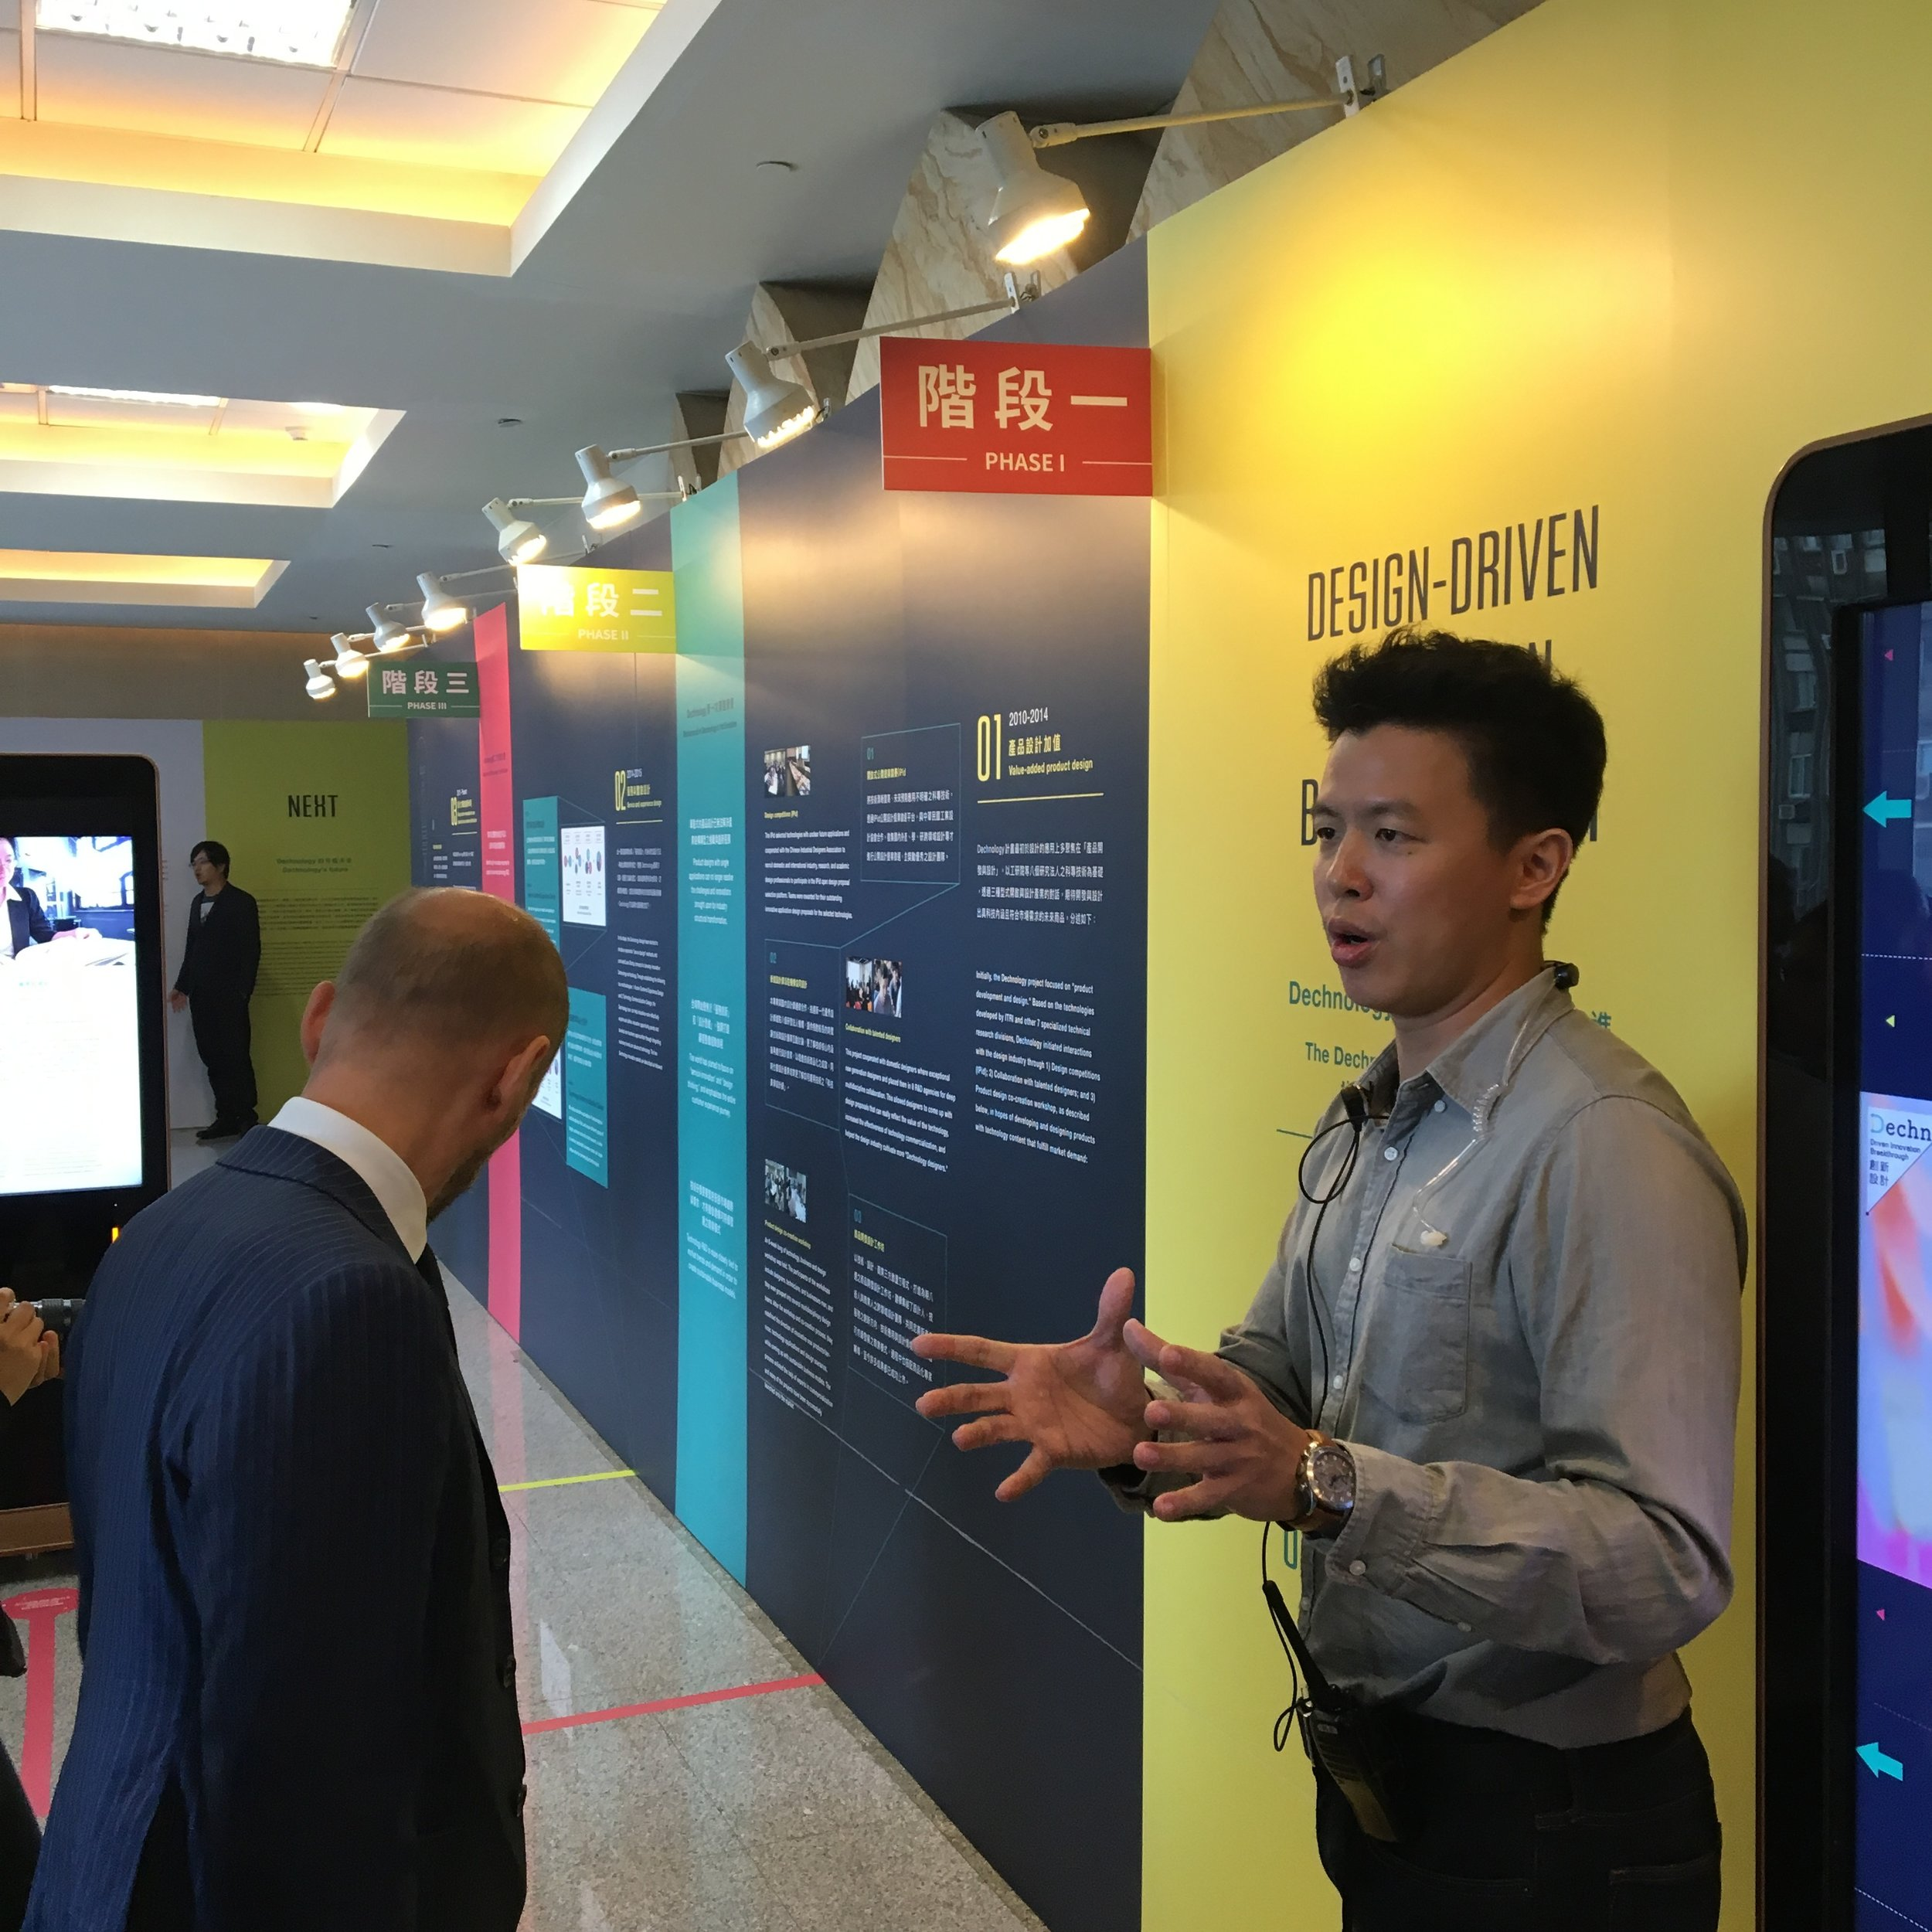 From right to left: Dr. Roberto Verganti recieves a tour from Chih-Shiang (Mike) Wu, deputy manager at ITRI.